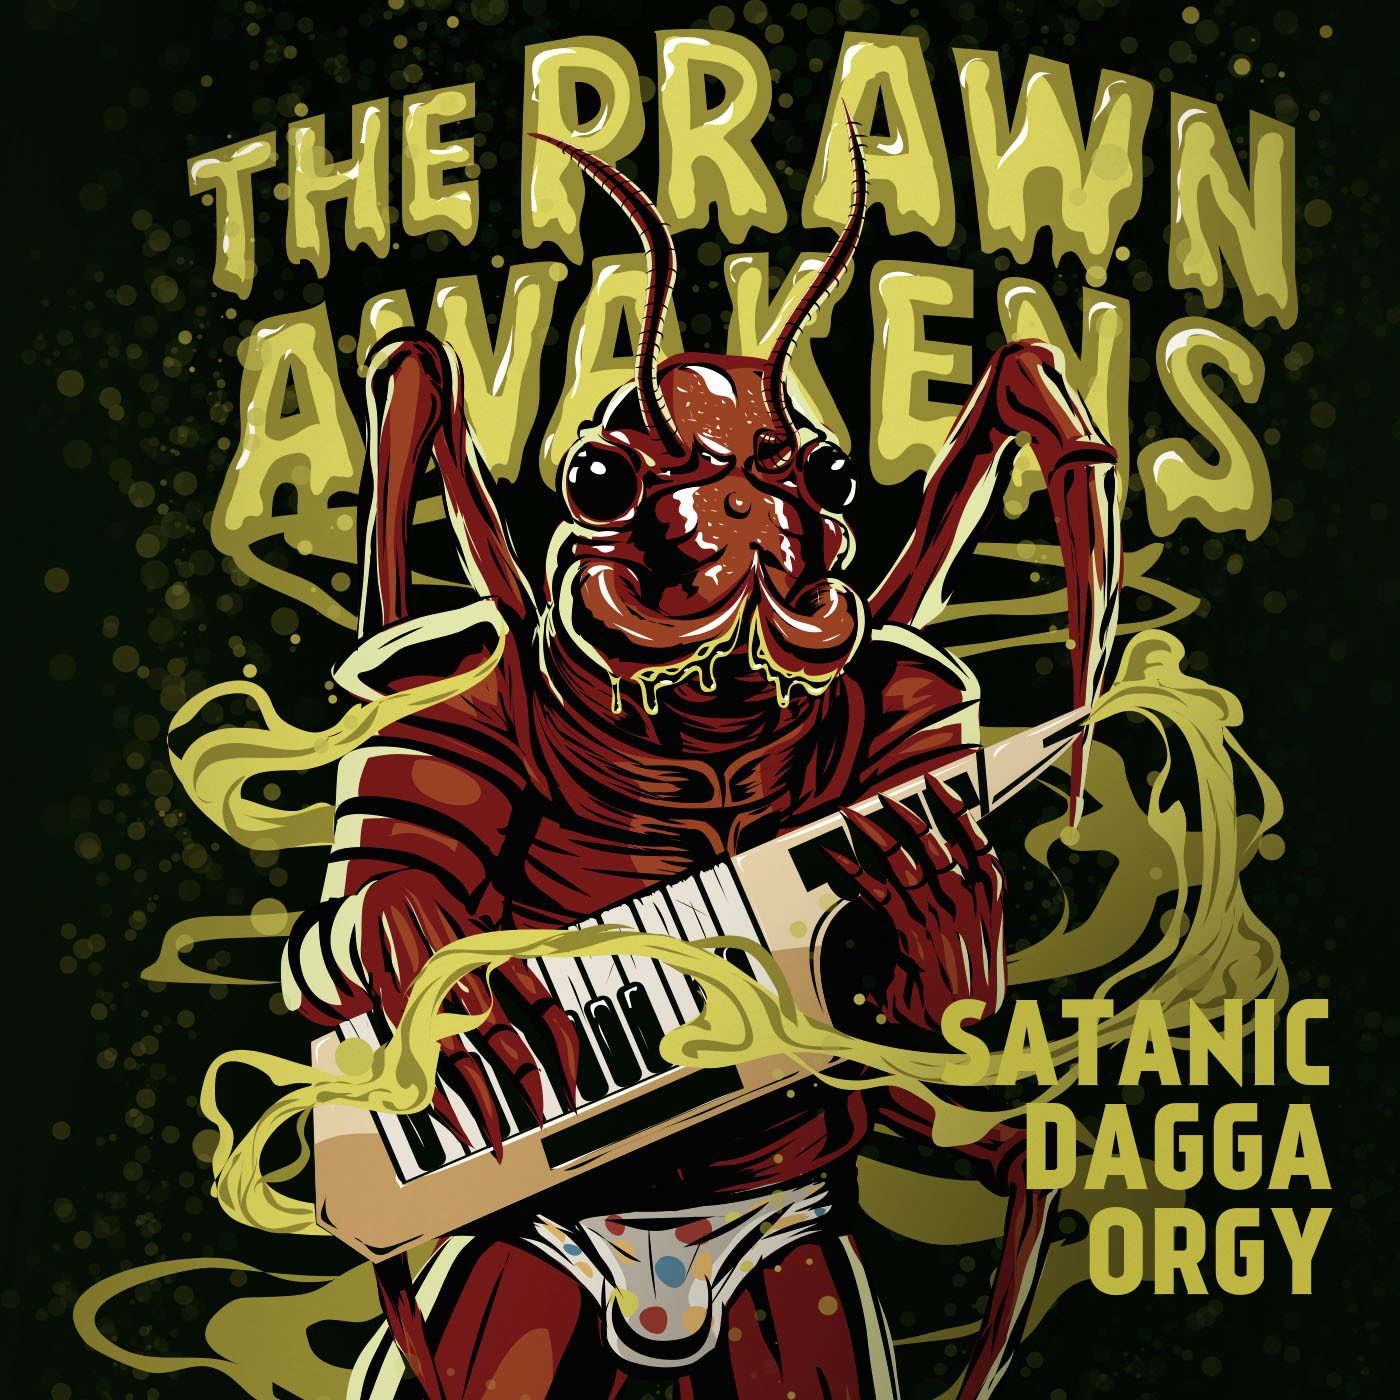 SATANIC DAGGA ORGY - THE PRAWN AWAKENS - ALBUM WALK THROUGH